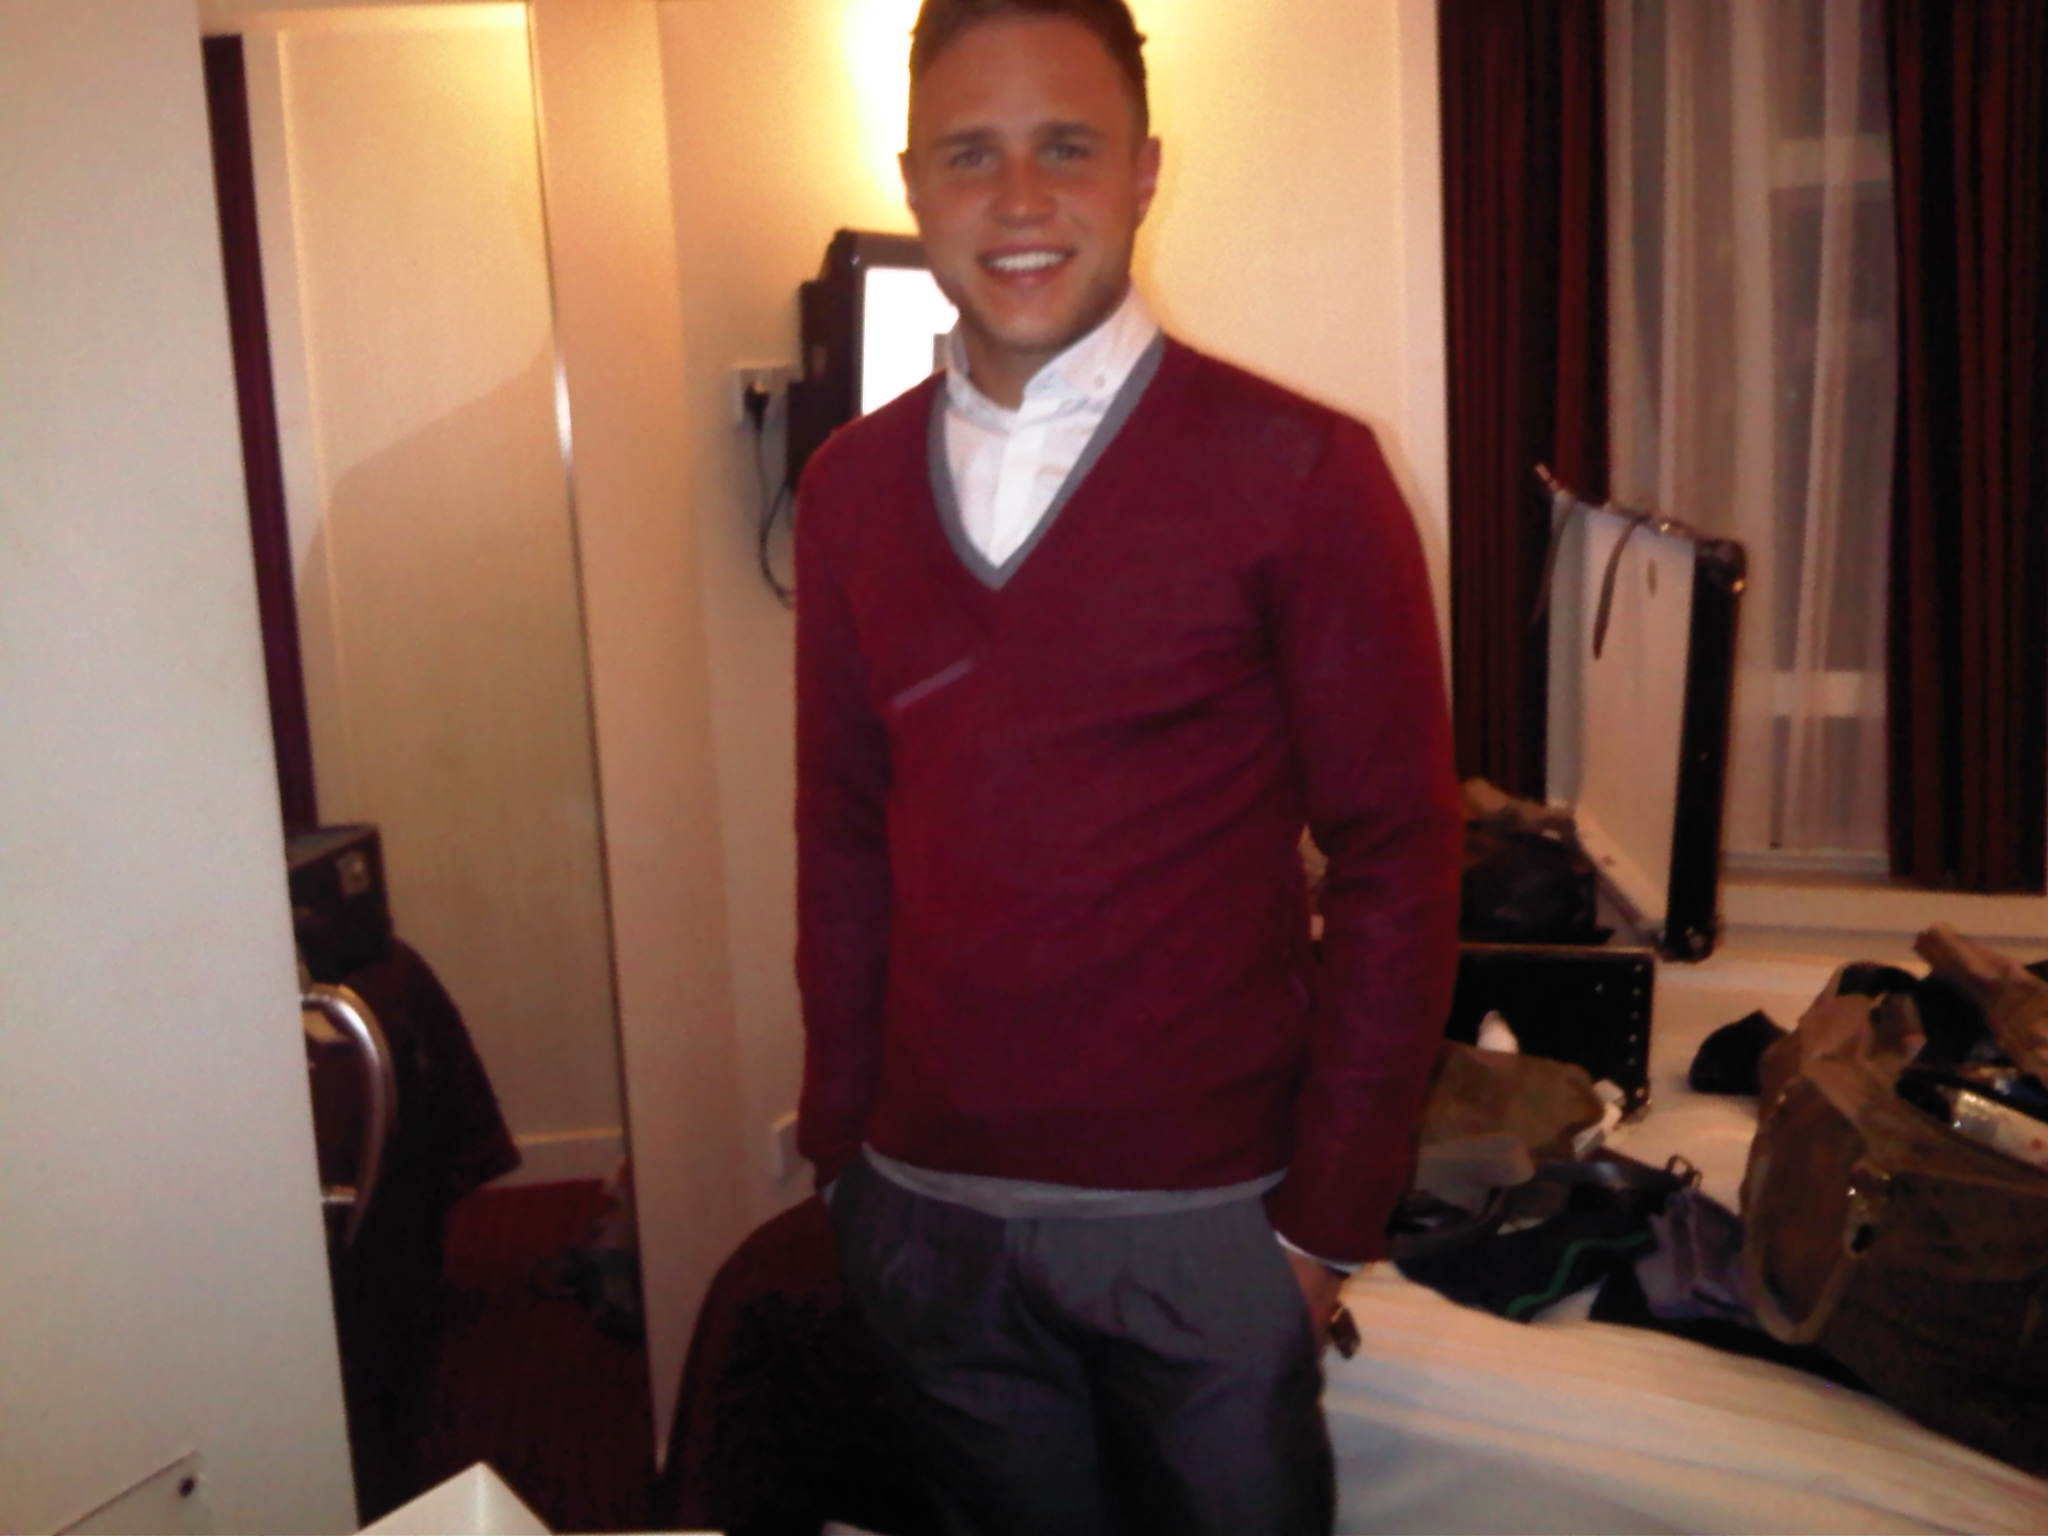 olly murs olly murs photo 16927893 fanpop. Black Bedroom Furniture Sets. Home Design Ideas